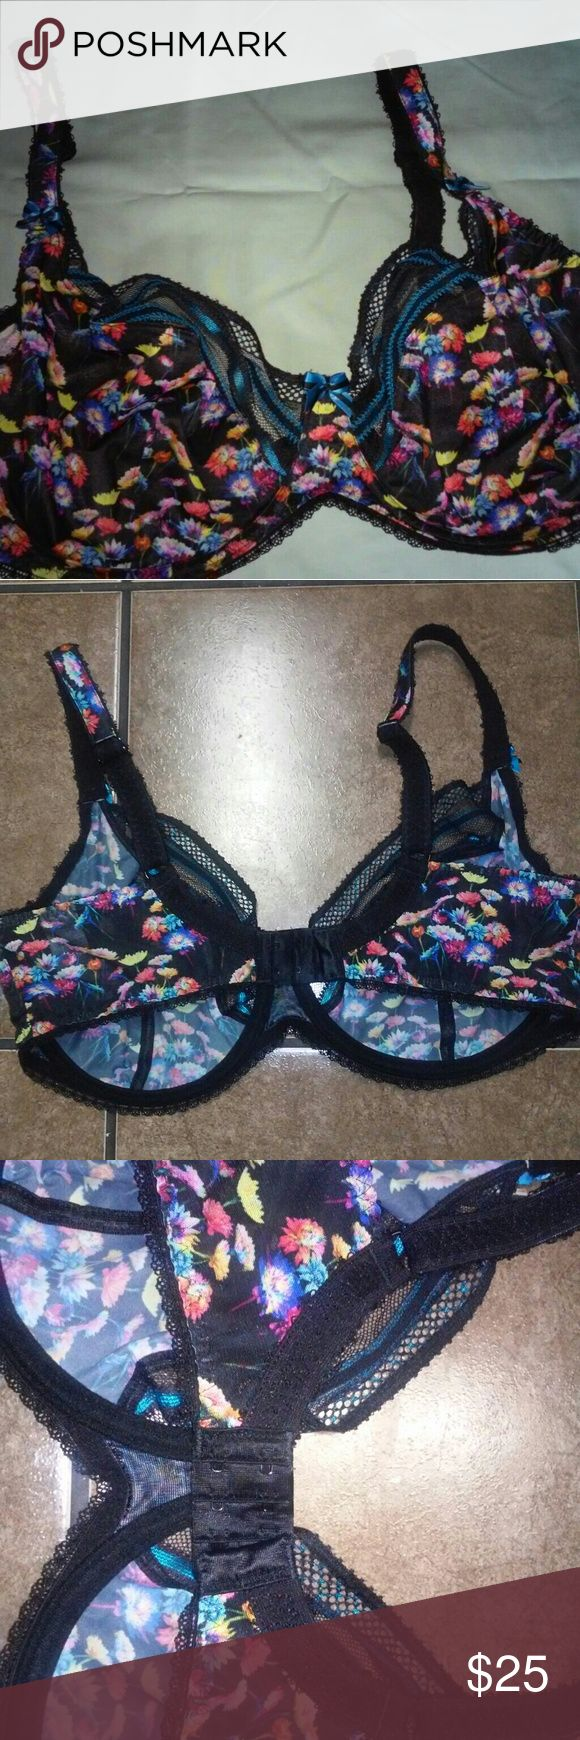 Freya bra very pretty Only wore once didnt like the fit...it fits like a 36G(4D) Freya Intimates & Sleepwear Bras